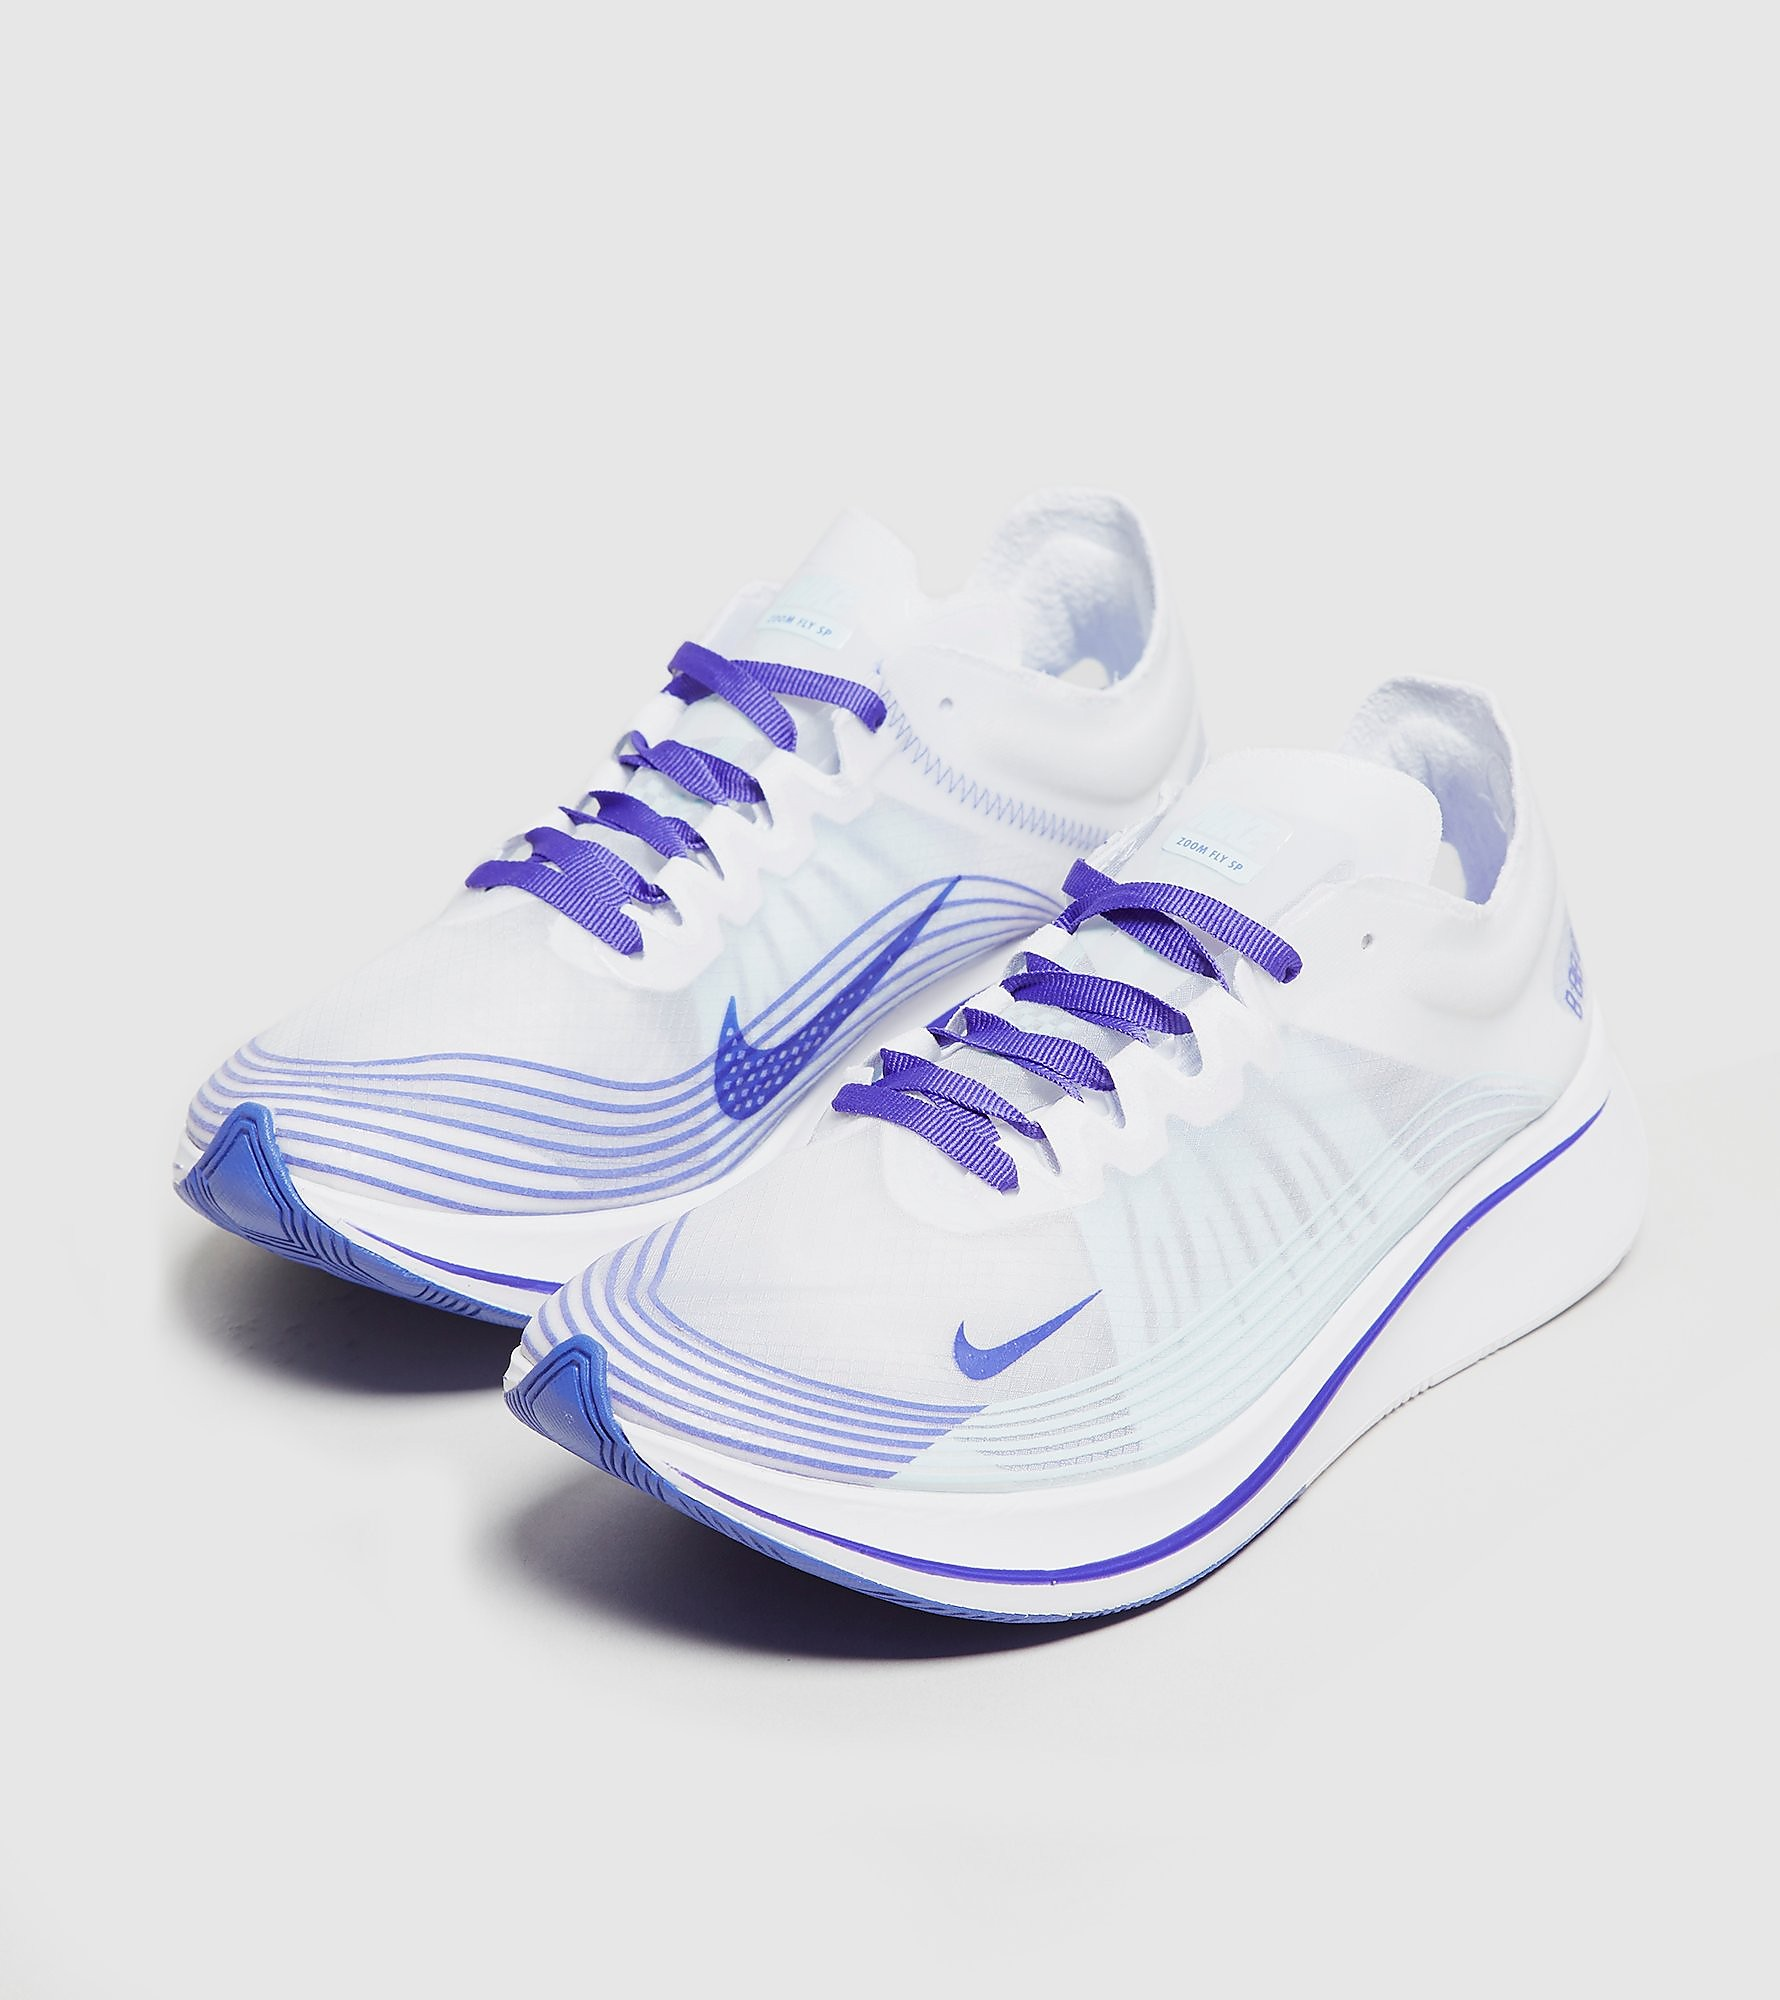 Nike QS Zoom Fly SP Women's